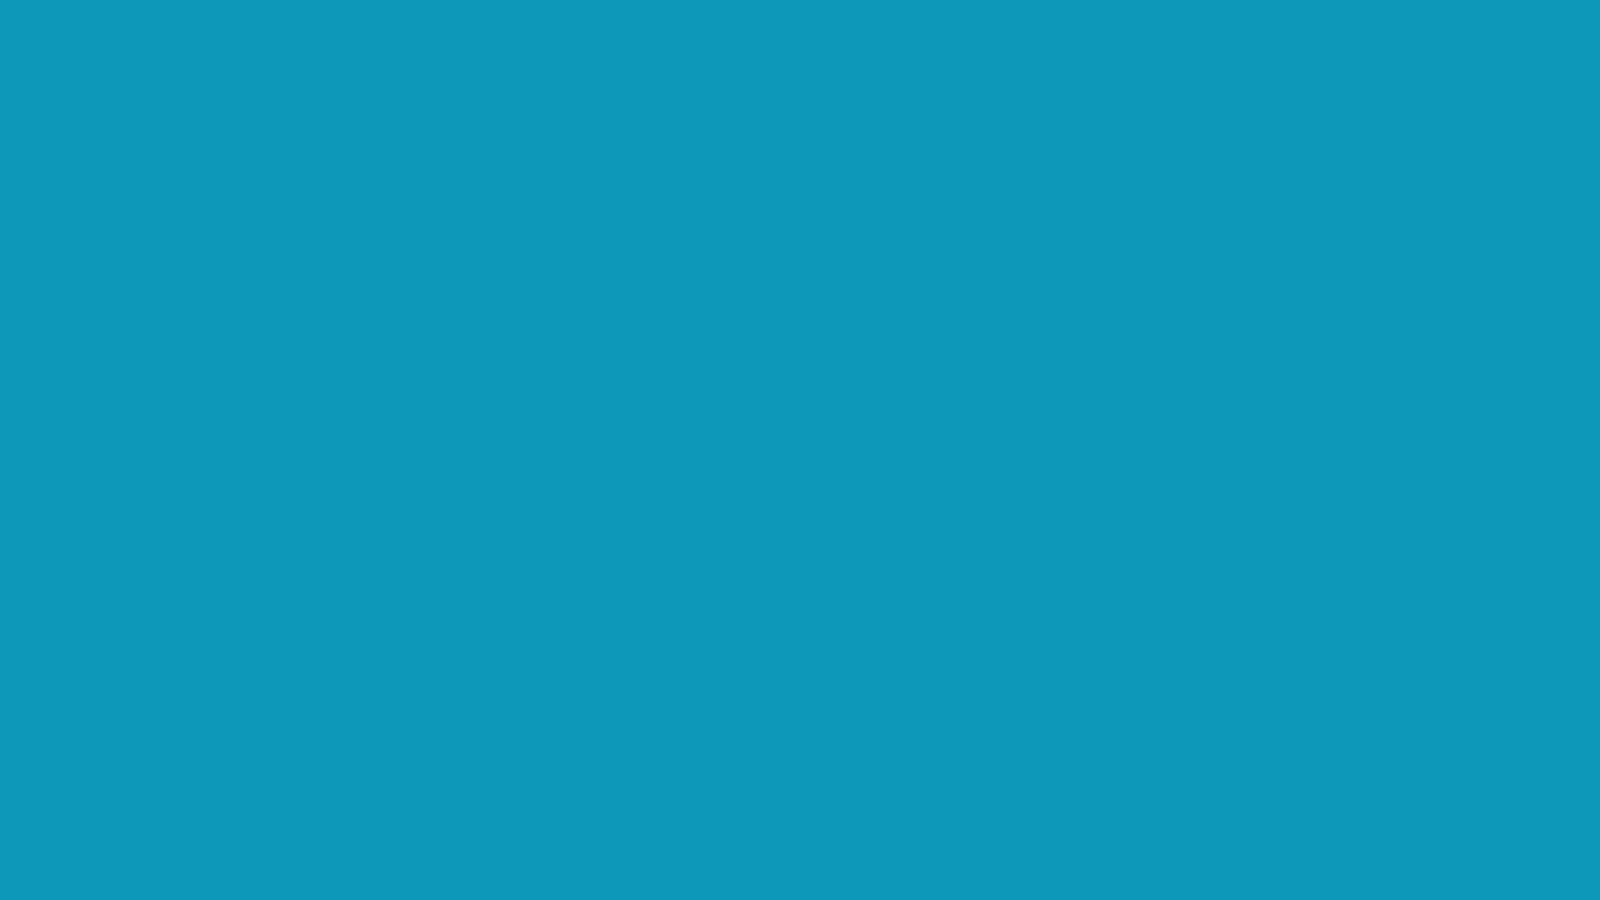 1600x900 Blue-green Solid Color Background